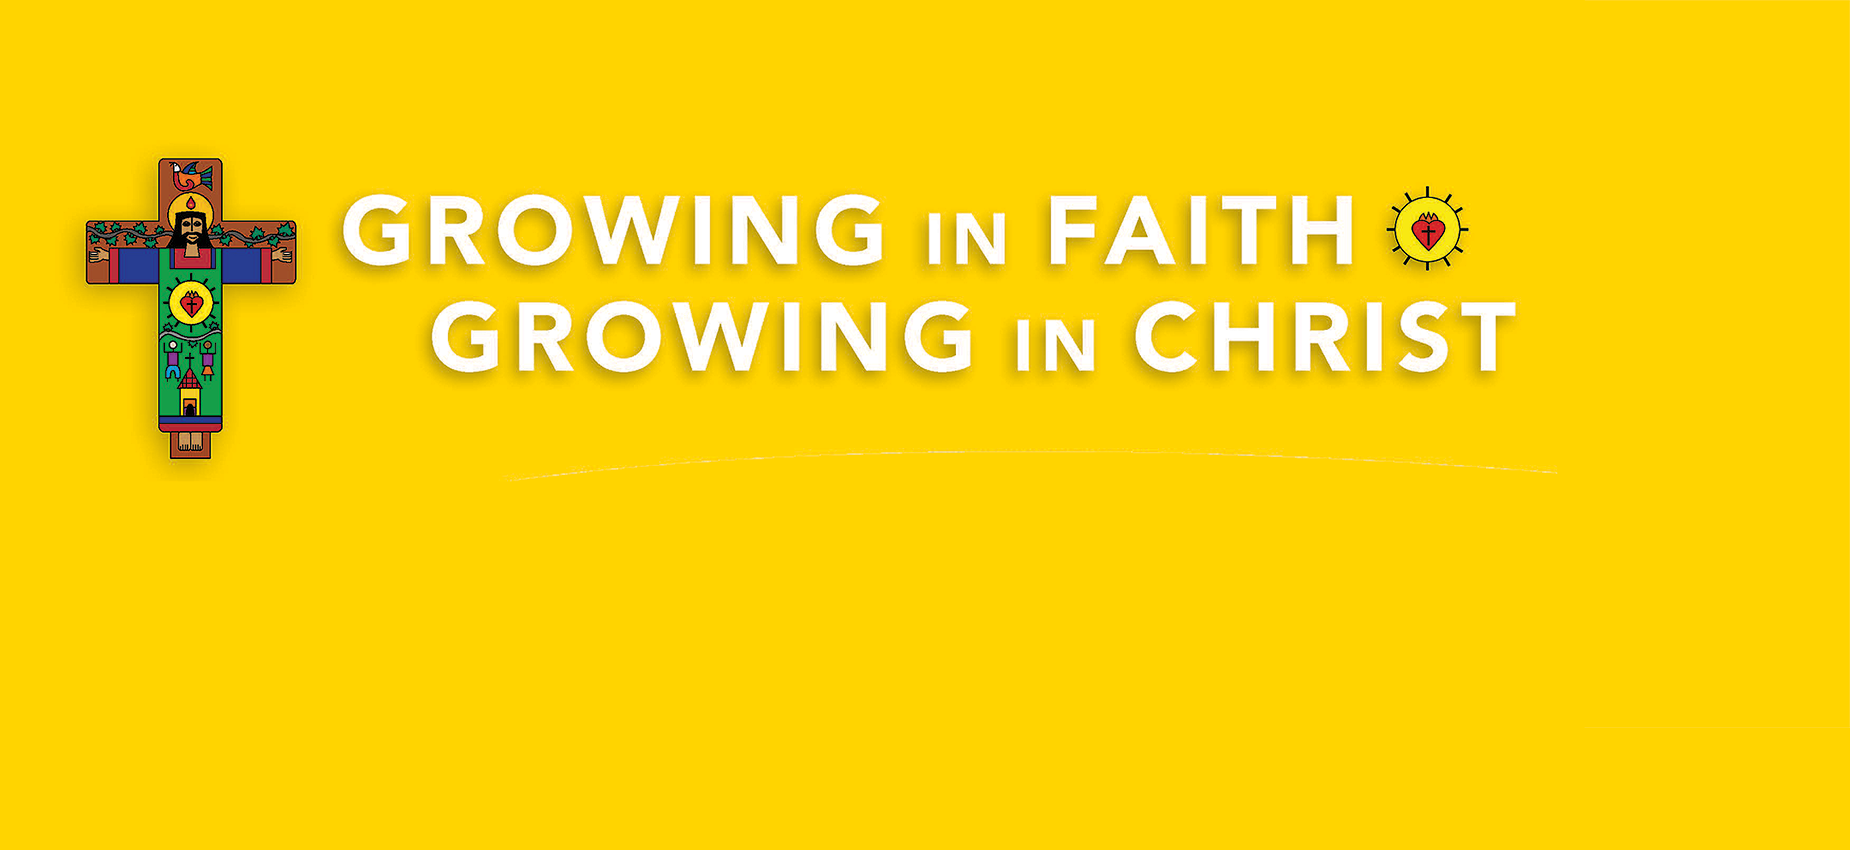 Growing in Faith Growing in Christ